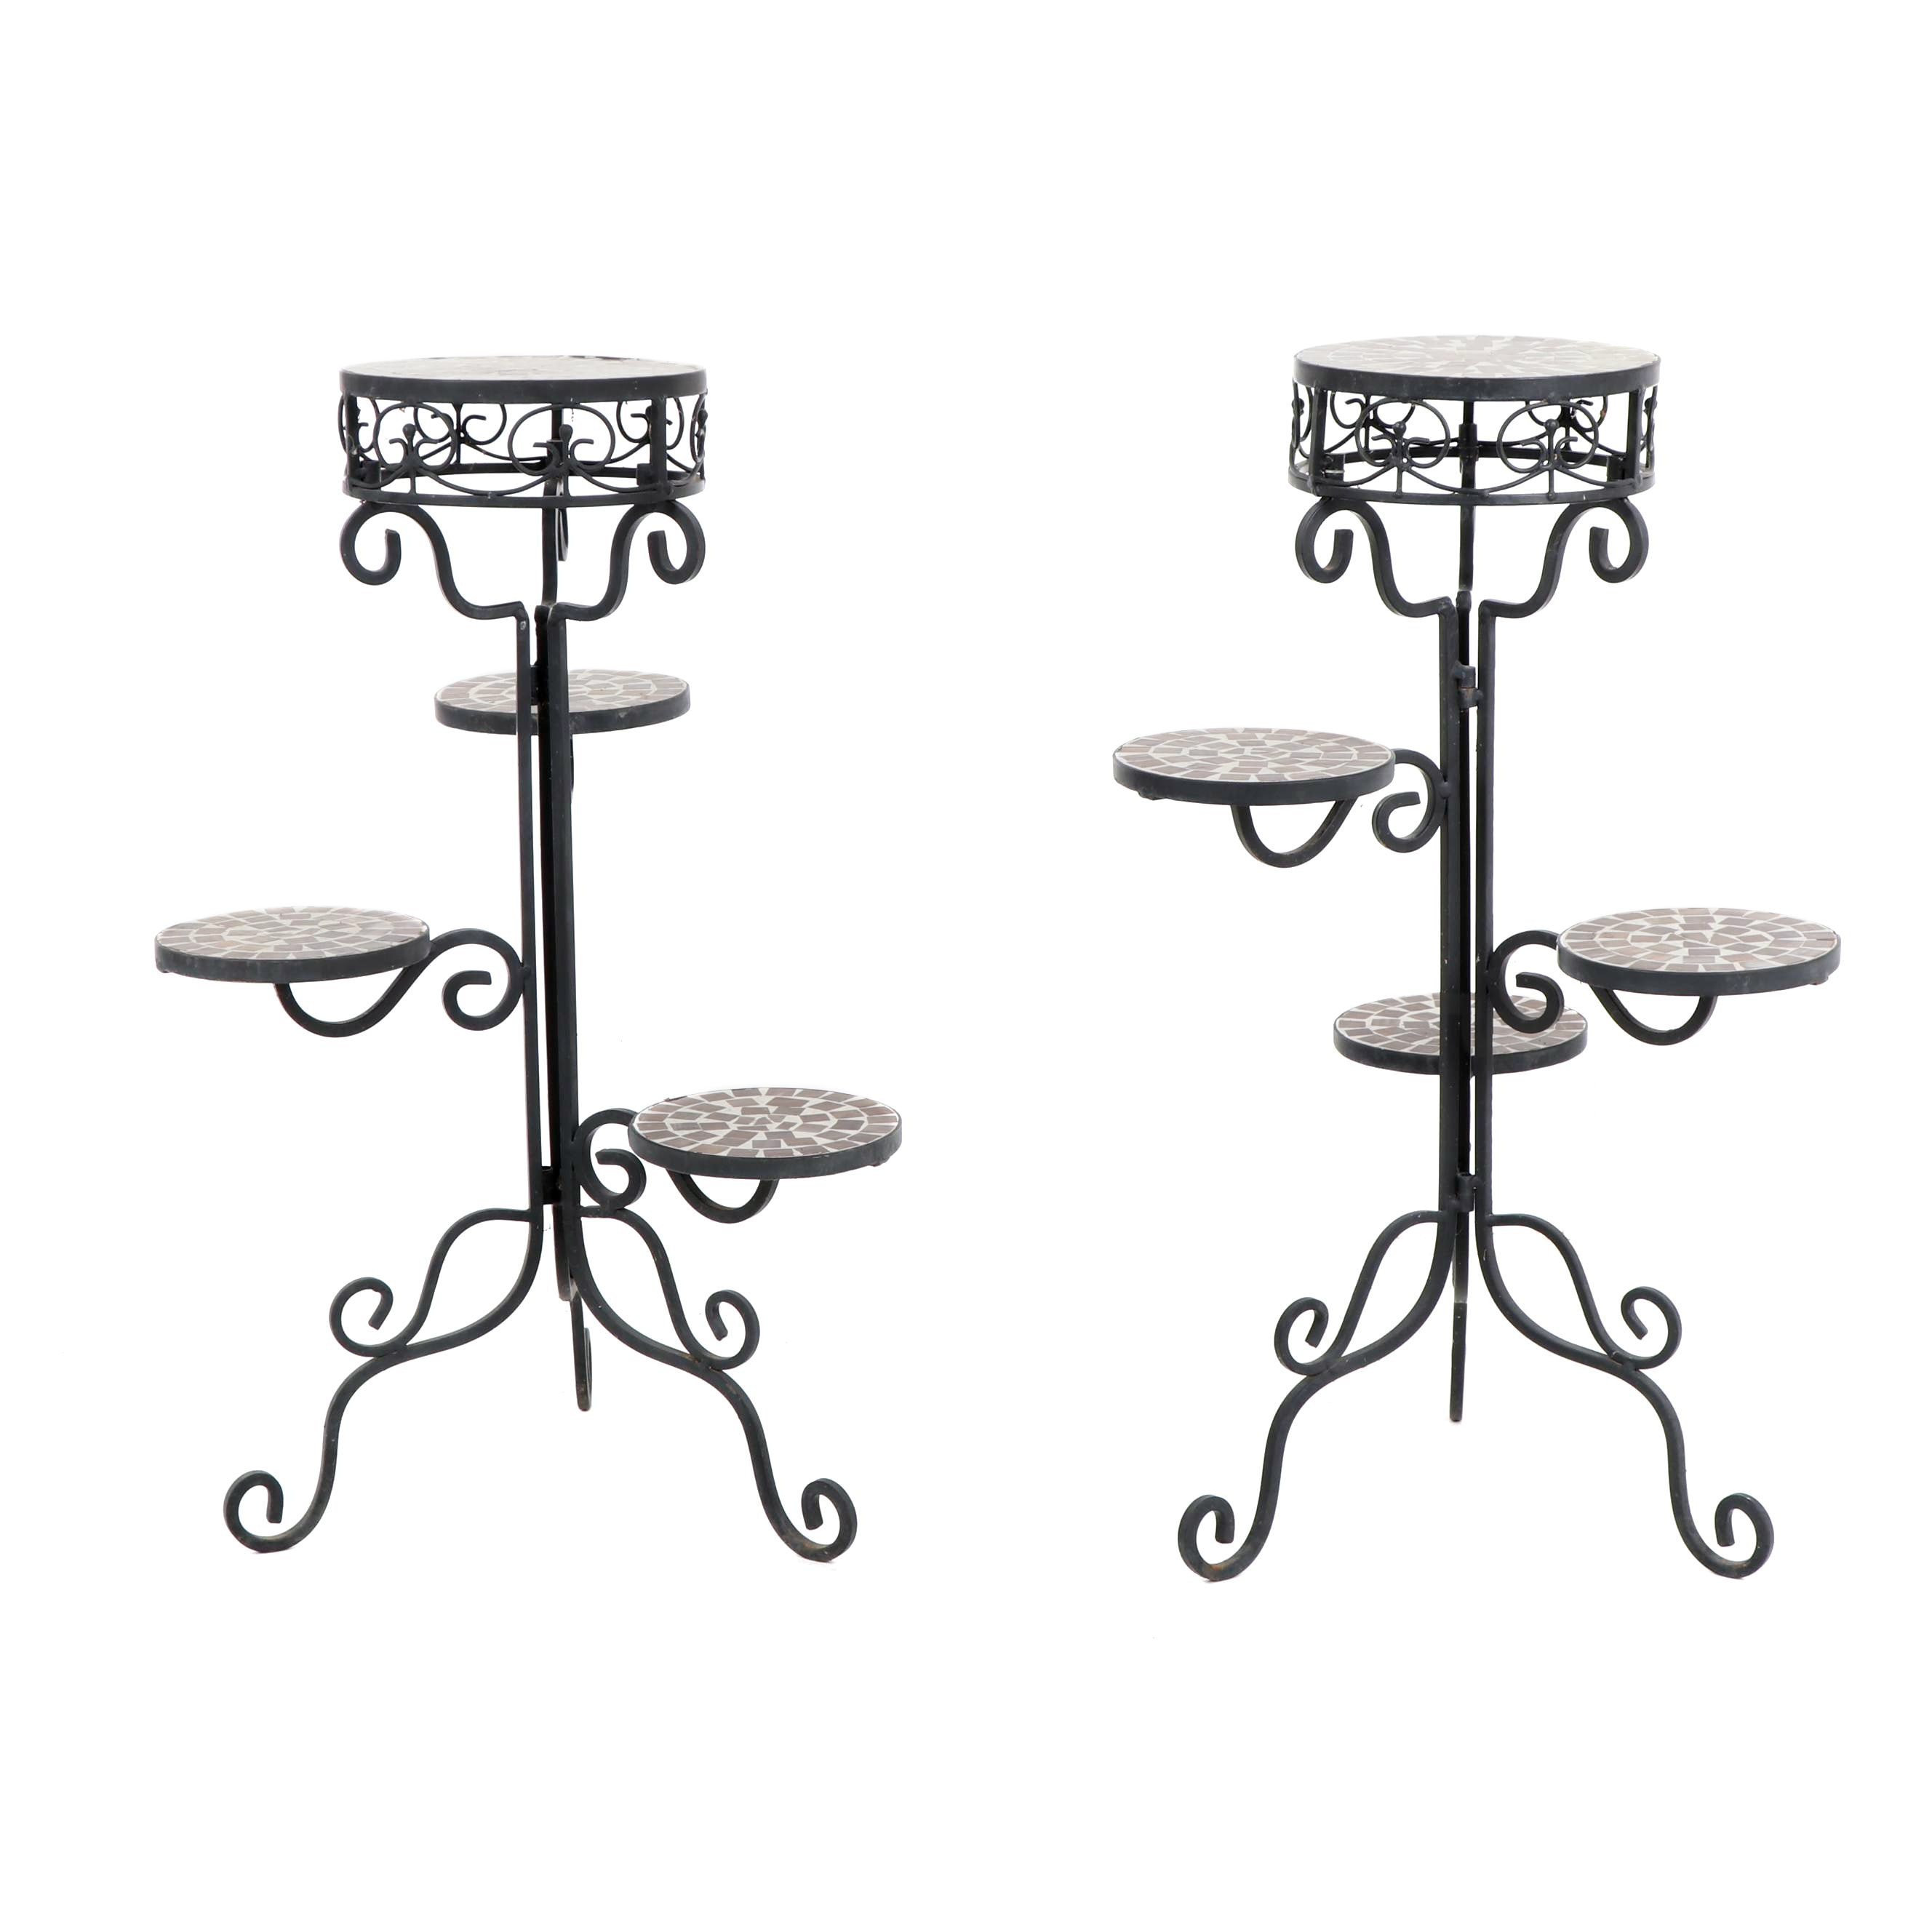 Metal and Mosaic Tiered Plant Stands